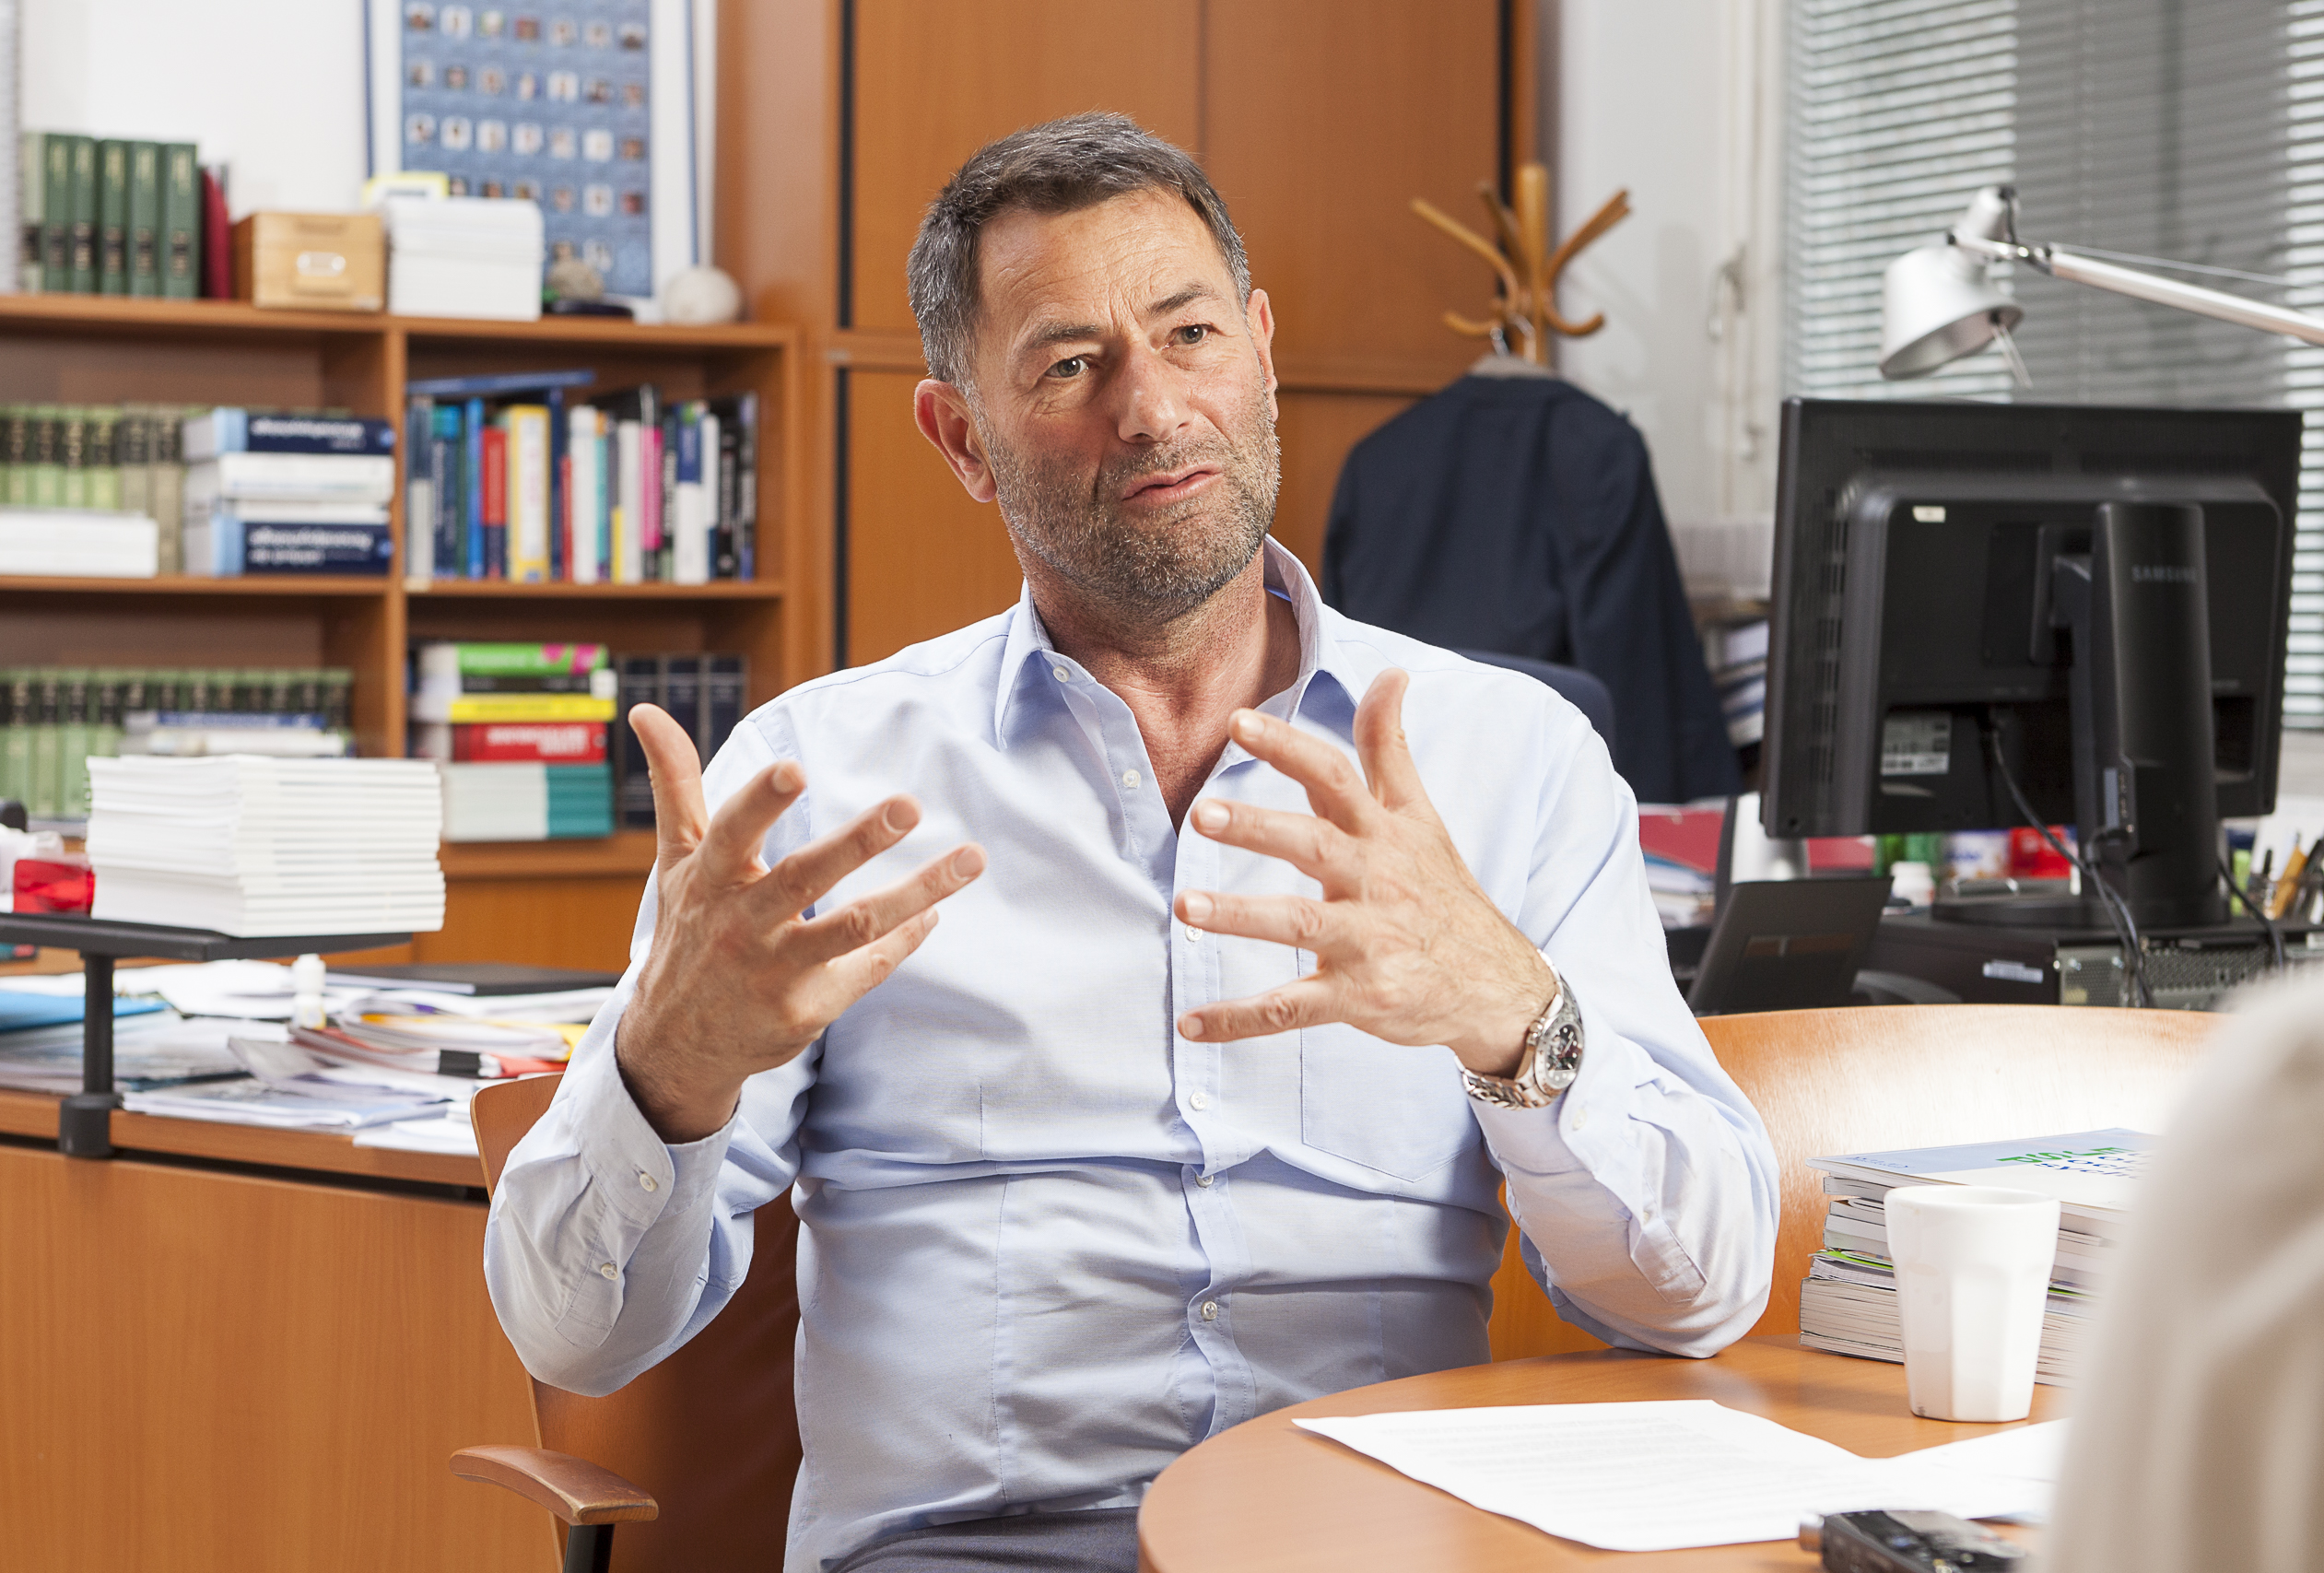 Psychologist Erich Kirchler knows a great deal about human behaviour. His knowledge is now coveted in politics, where motivation takes preference over regulation.